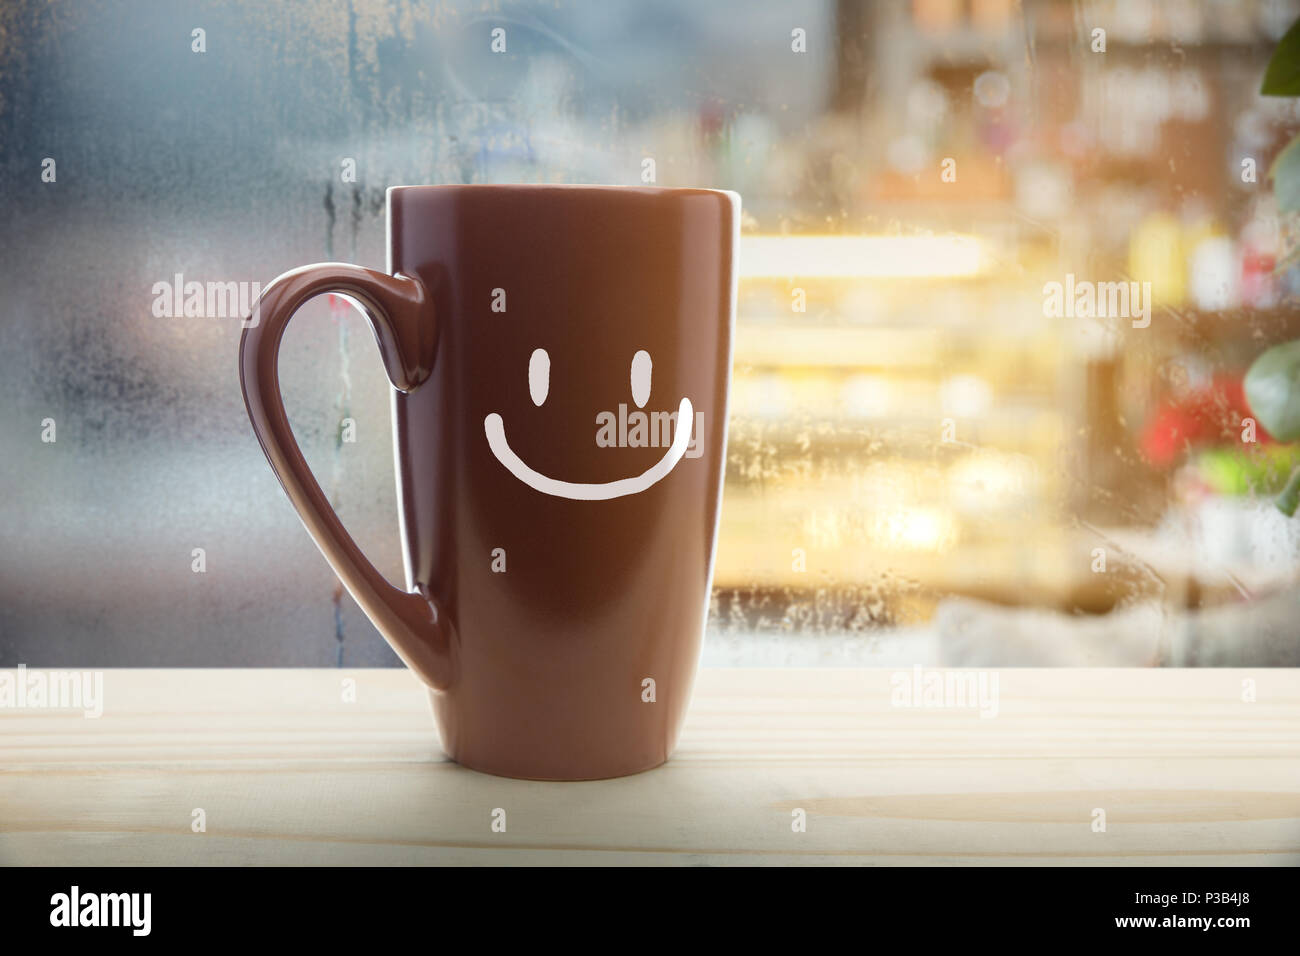 Good Morning Coffee Photos: Brown Mug Of Coffee With A Happy Smile, Steaming Red